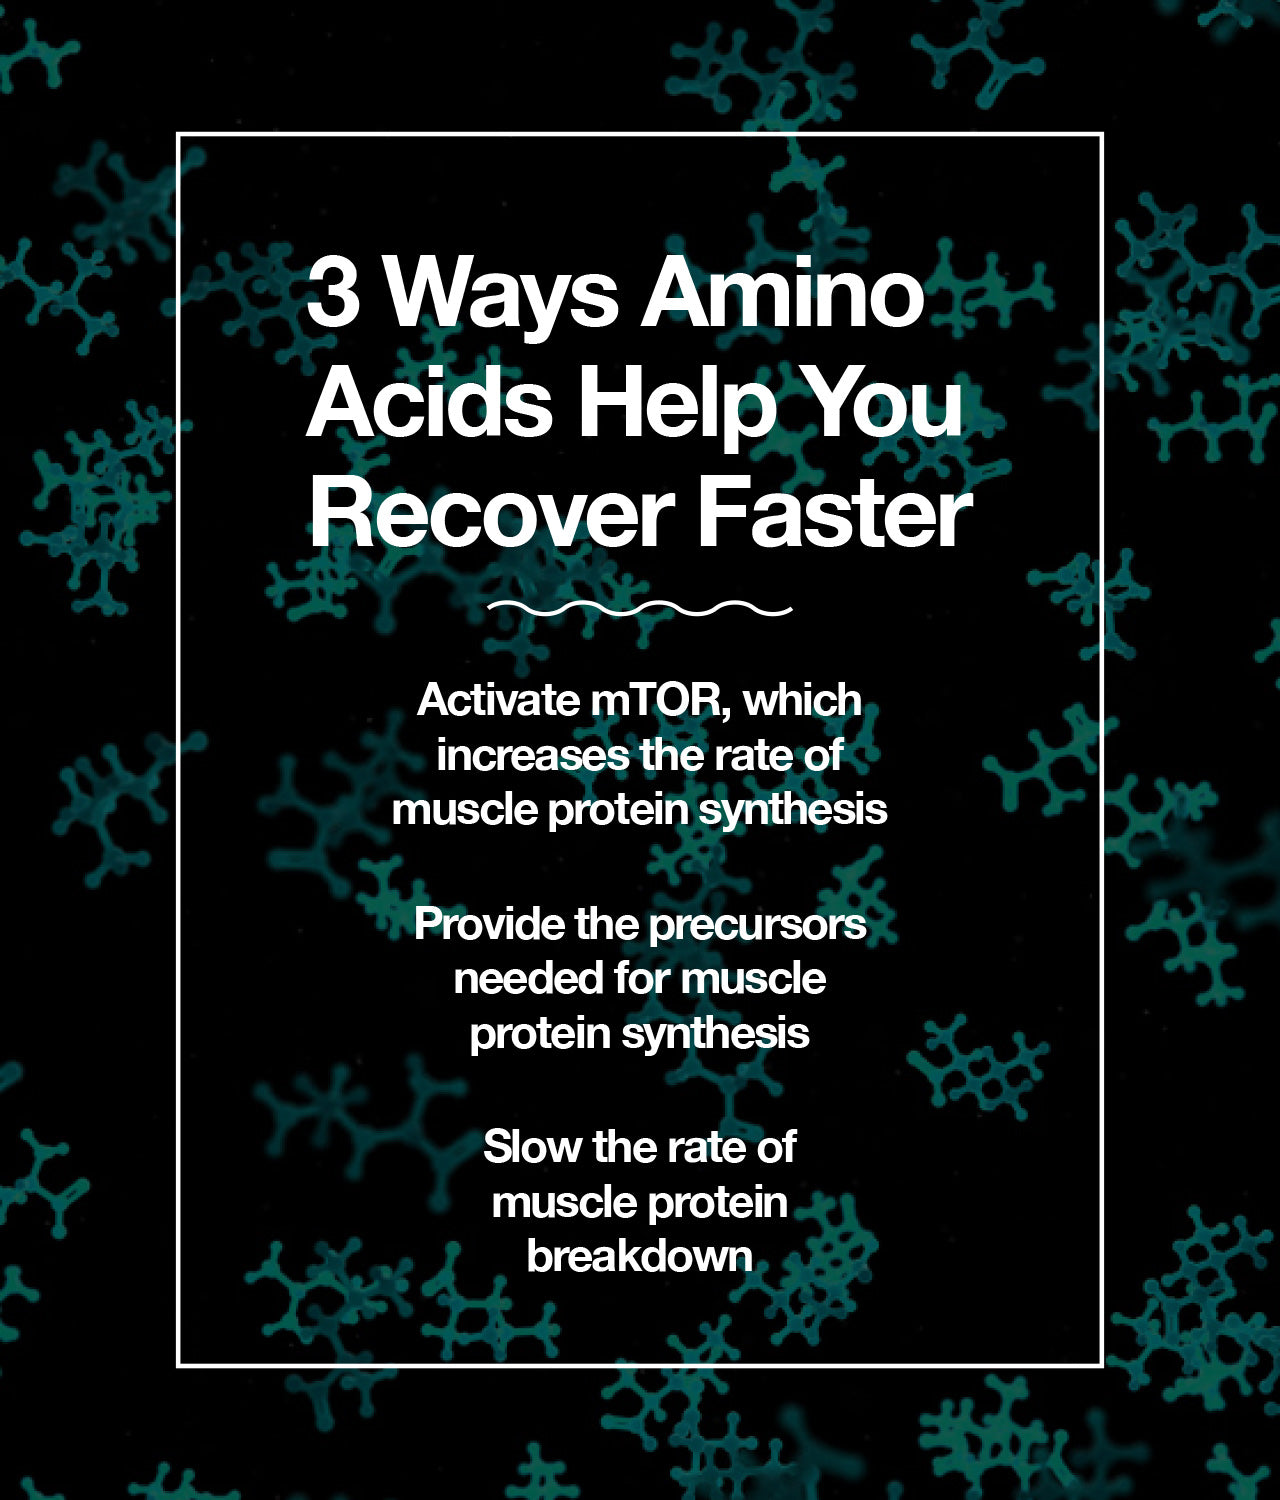 3 ways amino acids help you recover faster